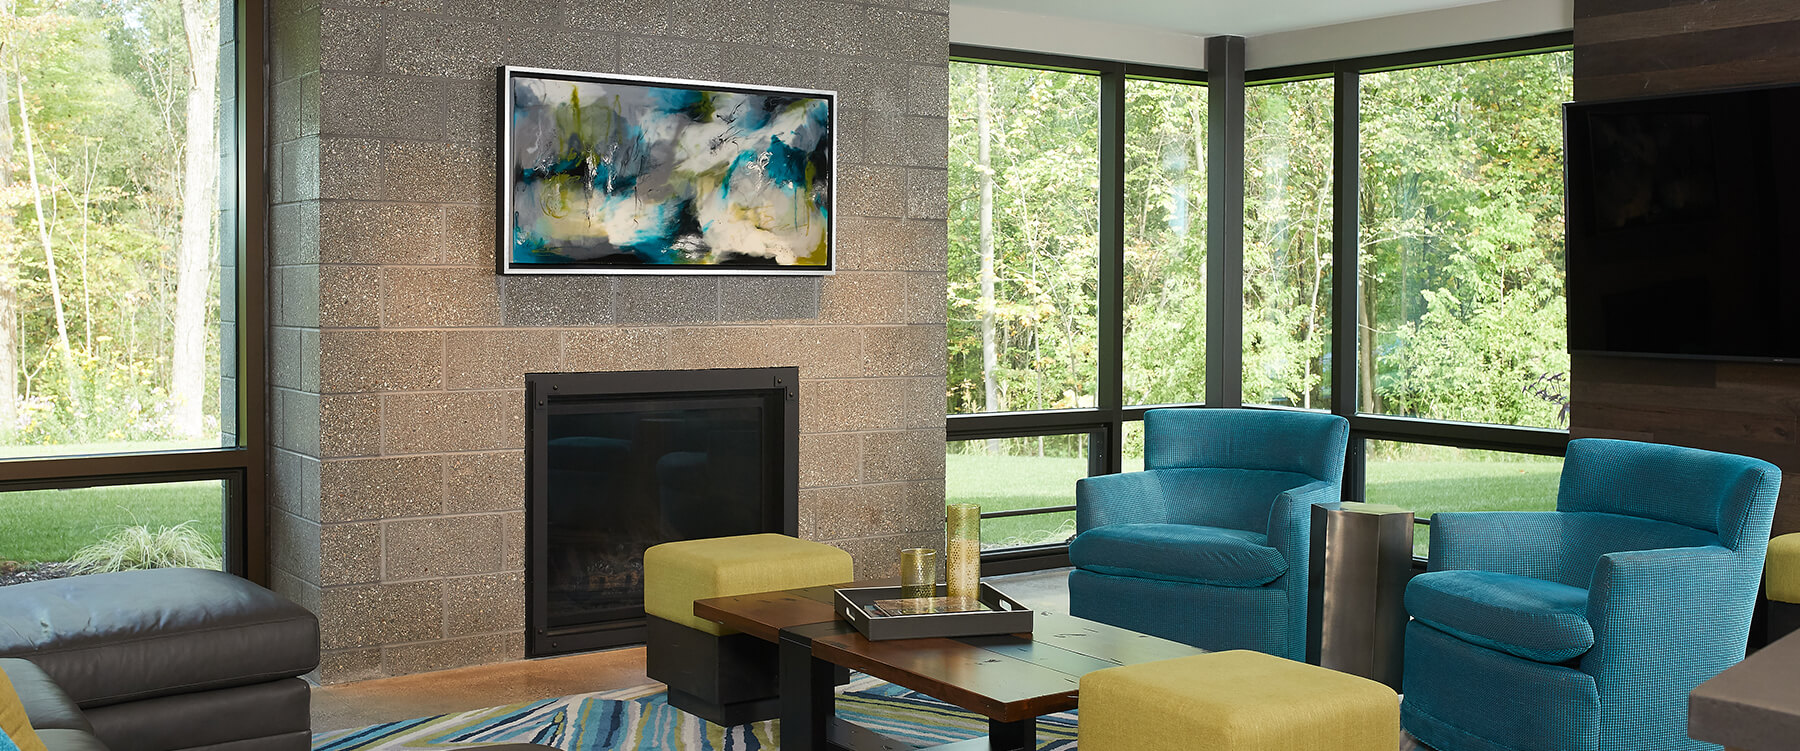 Modern home in the woods interior family lounge